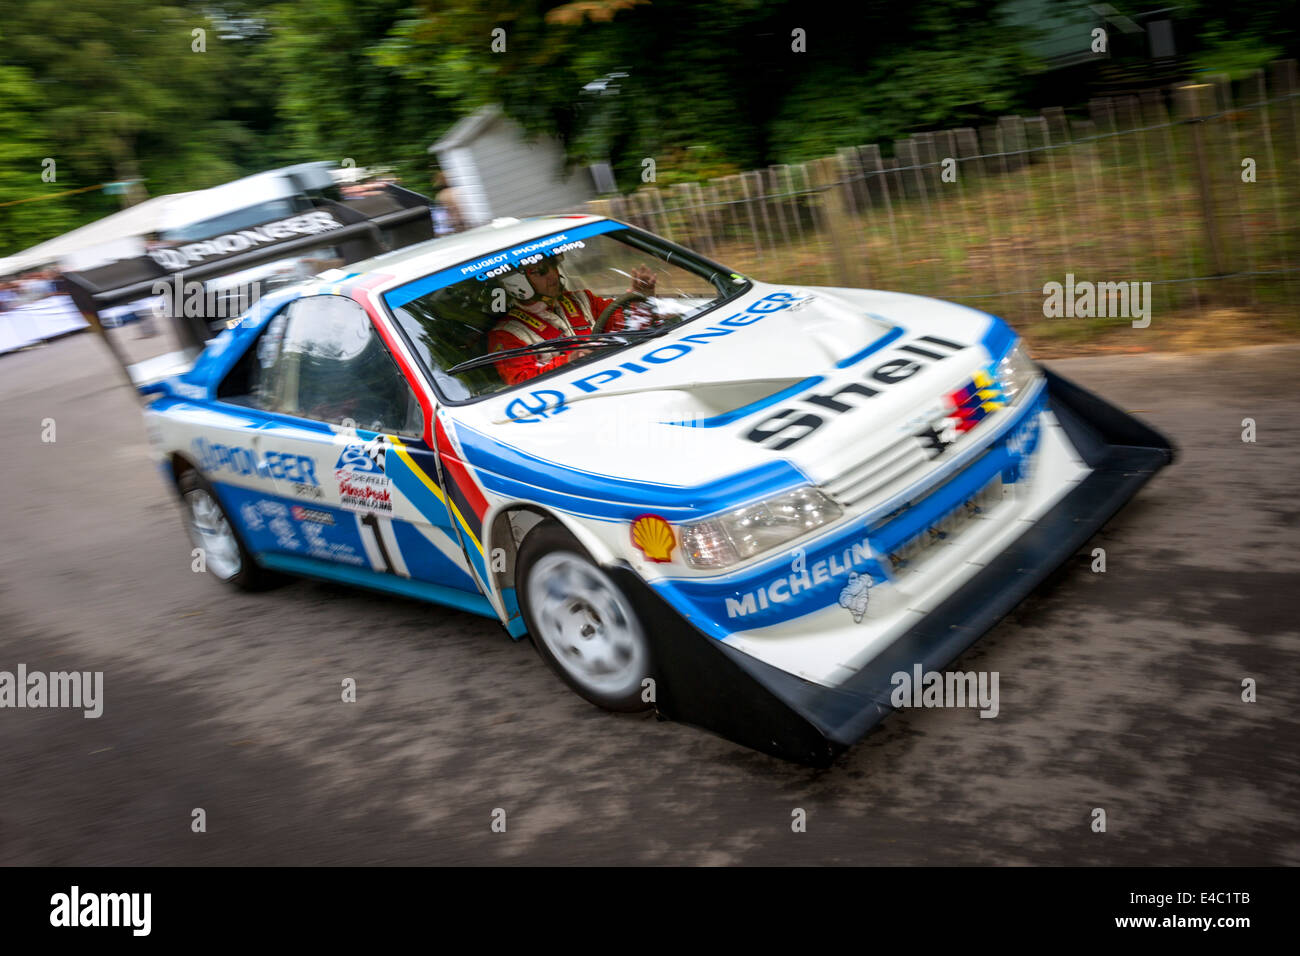 1988 peugeot 405 t16 gr pikes peak with driver enda garvey leaves stock photo royalty free. Black Bedroom Furniture Sets. Home Design Ideas